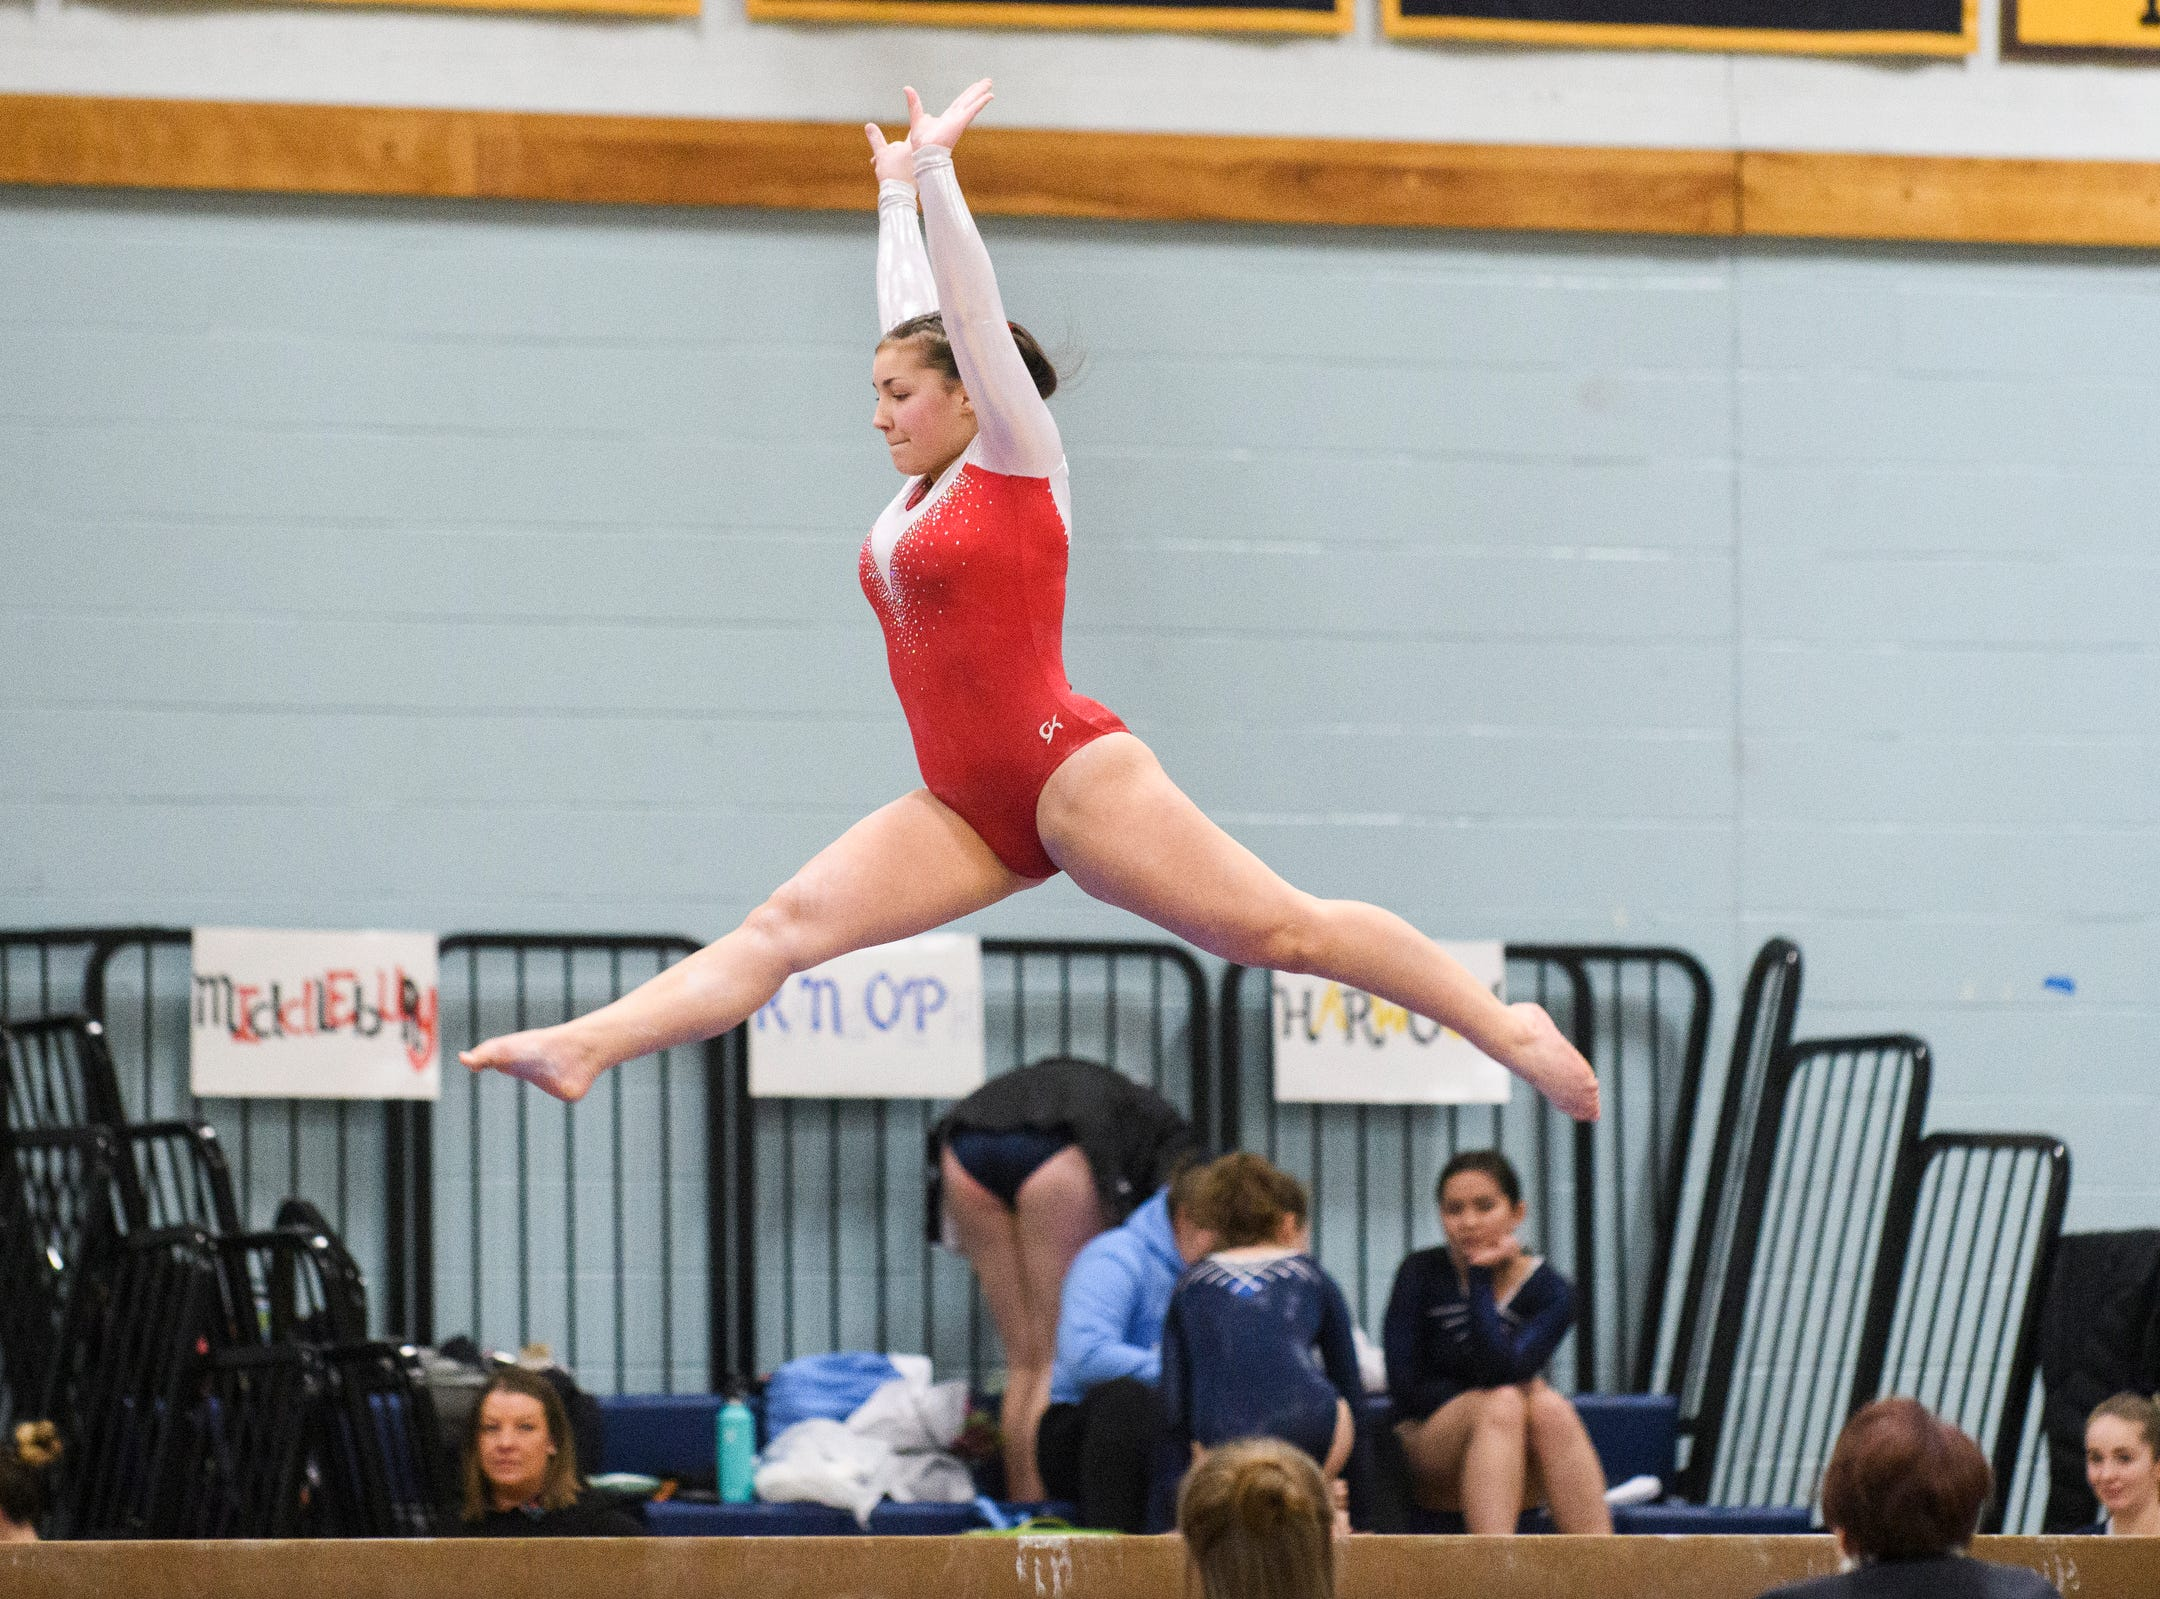 CVU's Logan Claffy competes in the bar during the 2019 high school gymnastics championship at Essex High School on Saturday afternoon February 16, 2019 in Essex, Vermont.